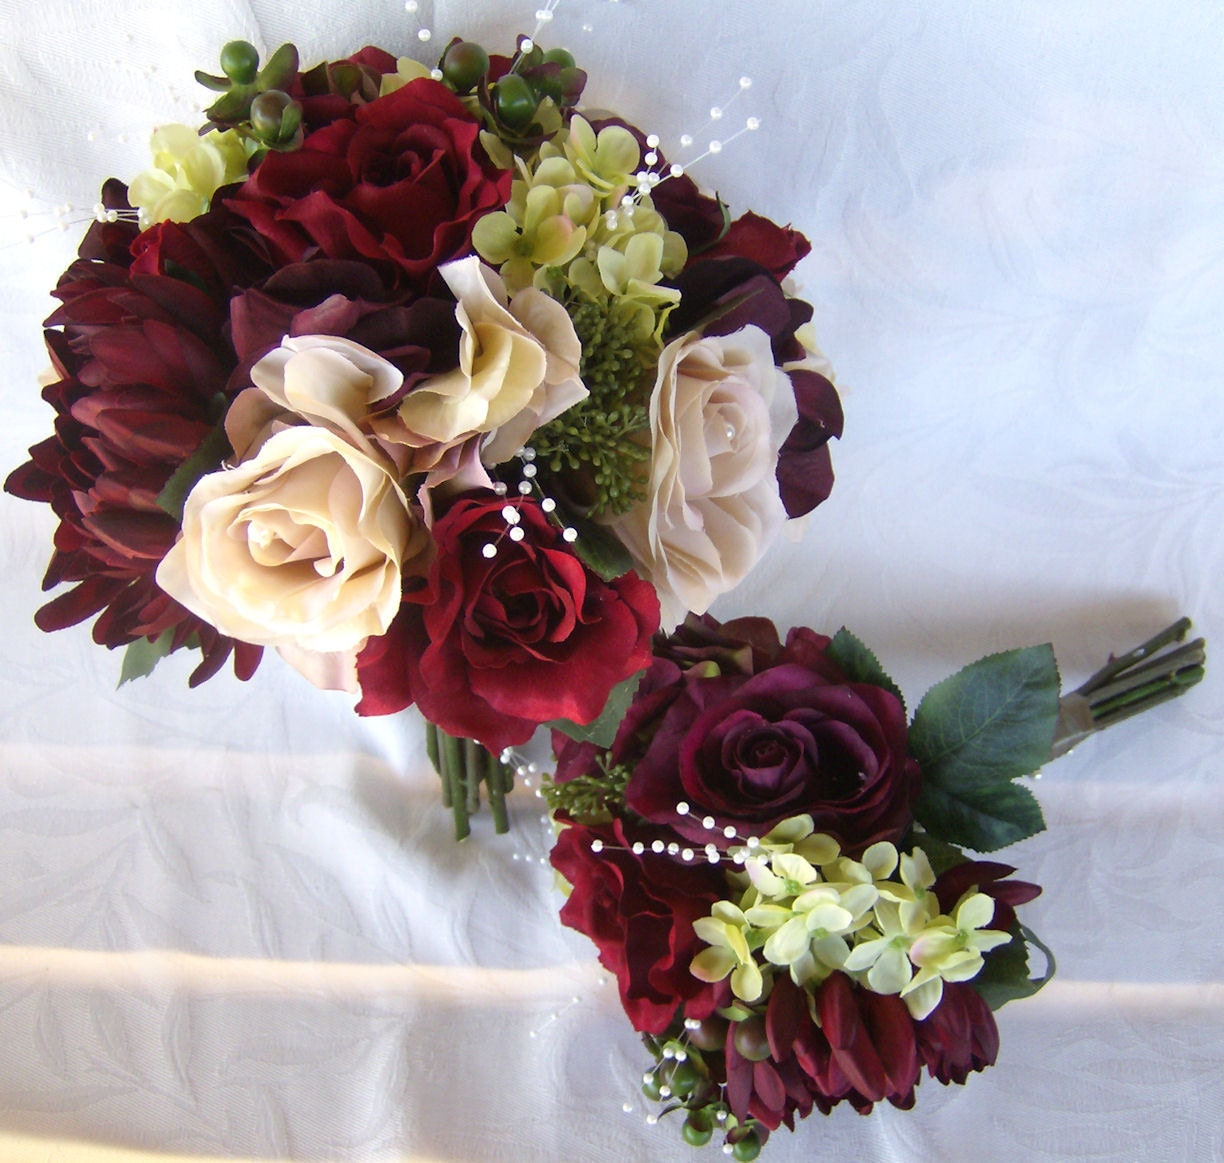 Reserved Wedding Bouquet Shades Of Burgundy And Ivory Roses